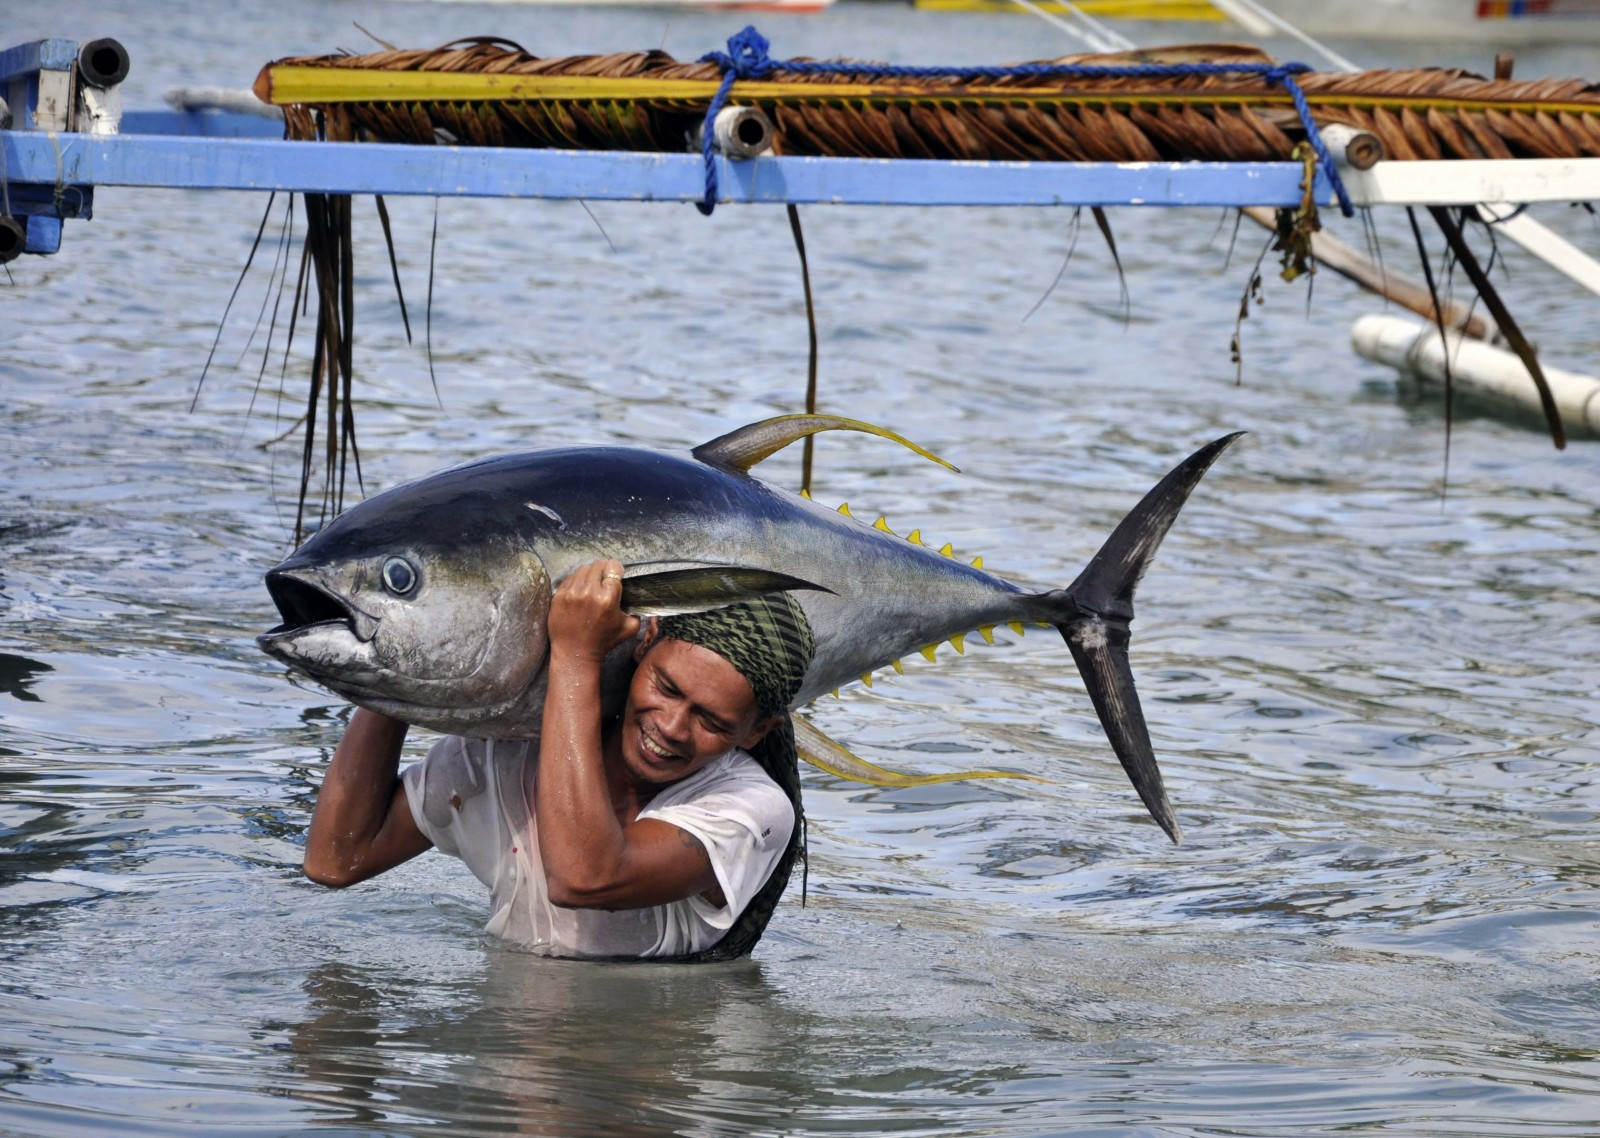 tuna-story-images-fisherman-with-tuna-by-gregg-yan-for-wwf.jpg